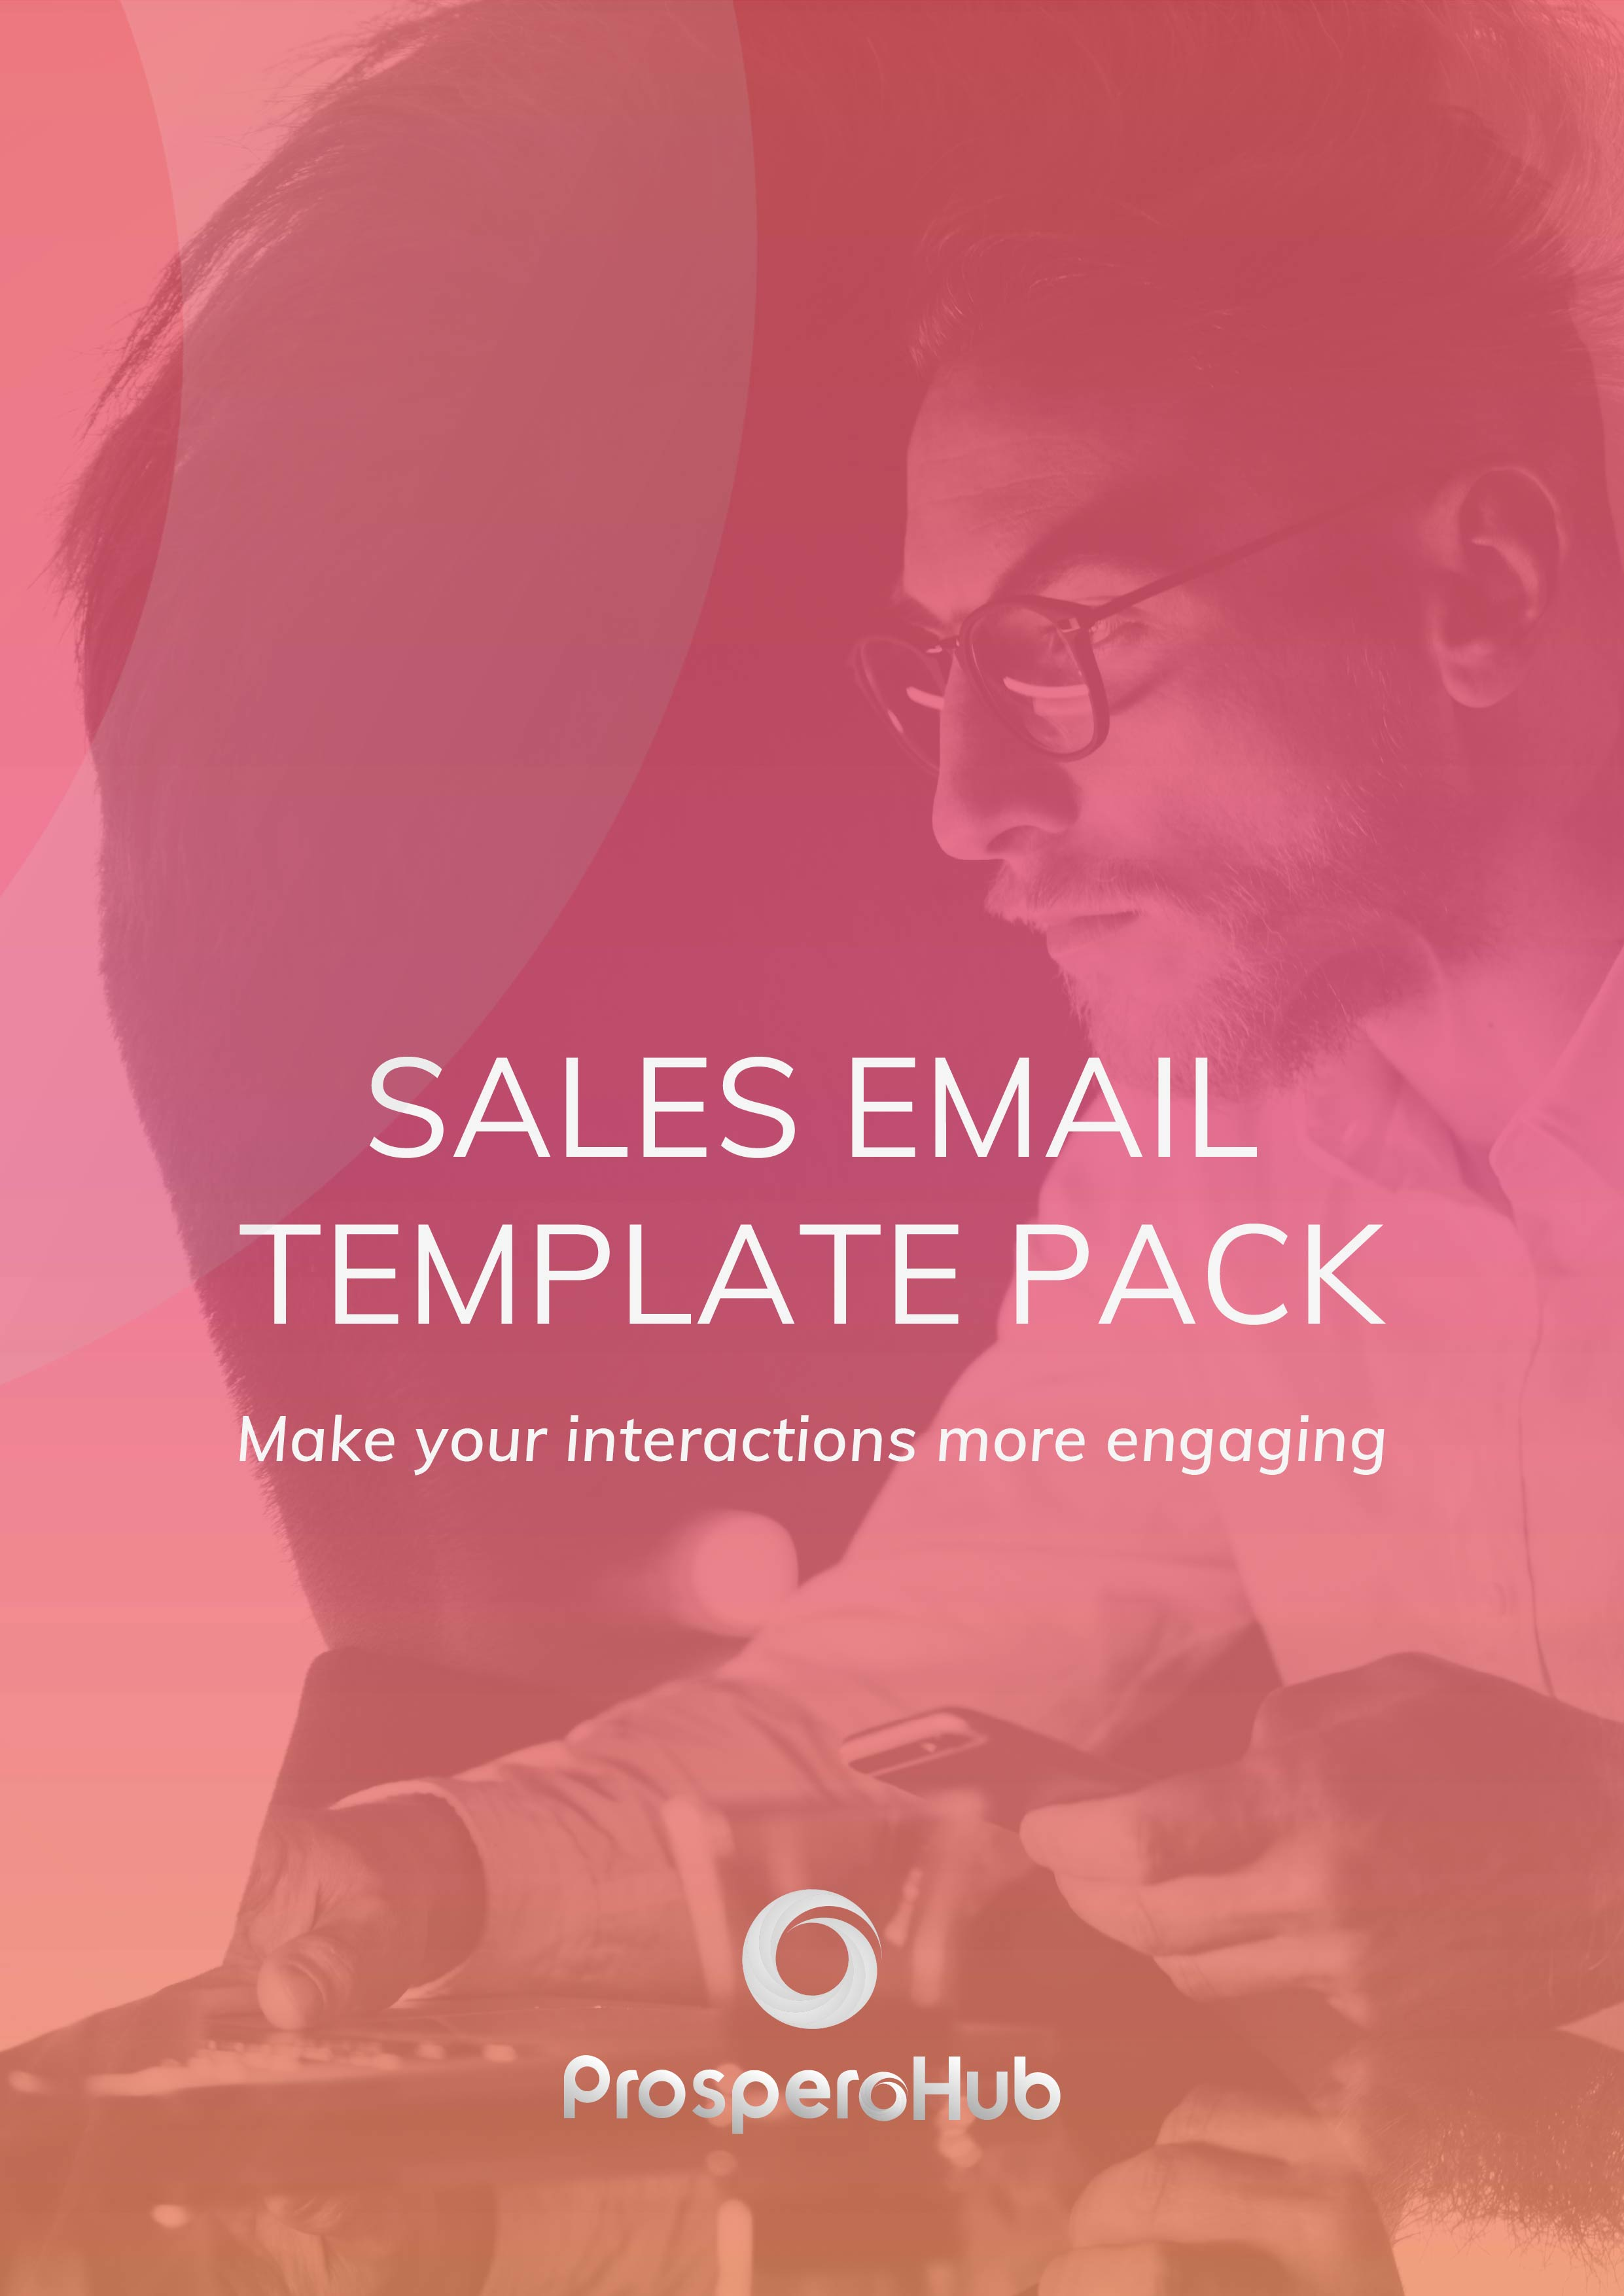 ProsperoHub - eBook- Sales Email Template Pack - Cover 2